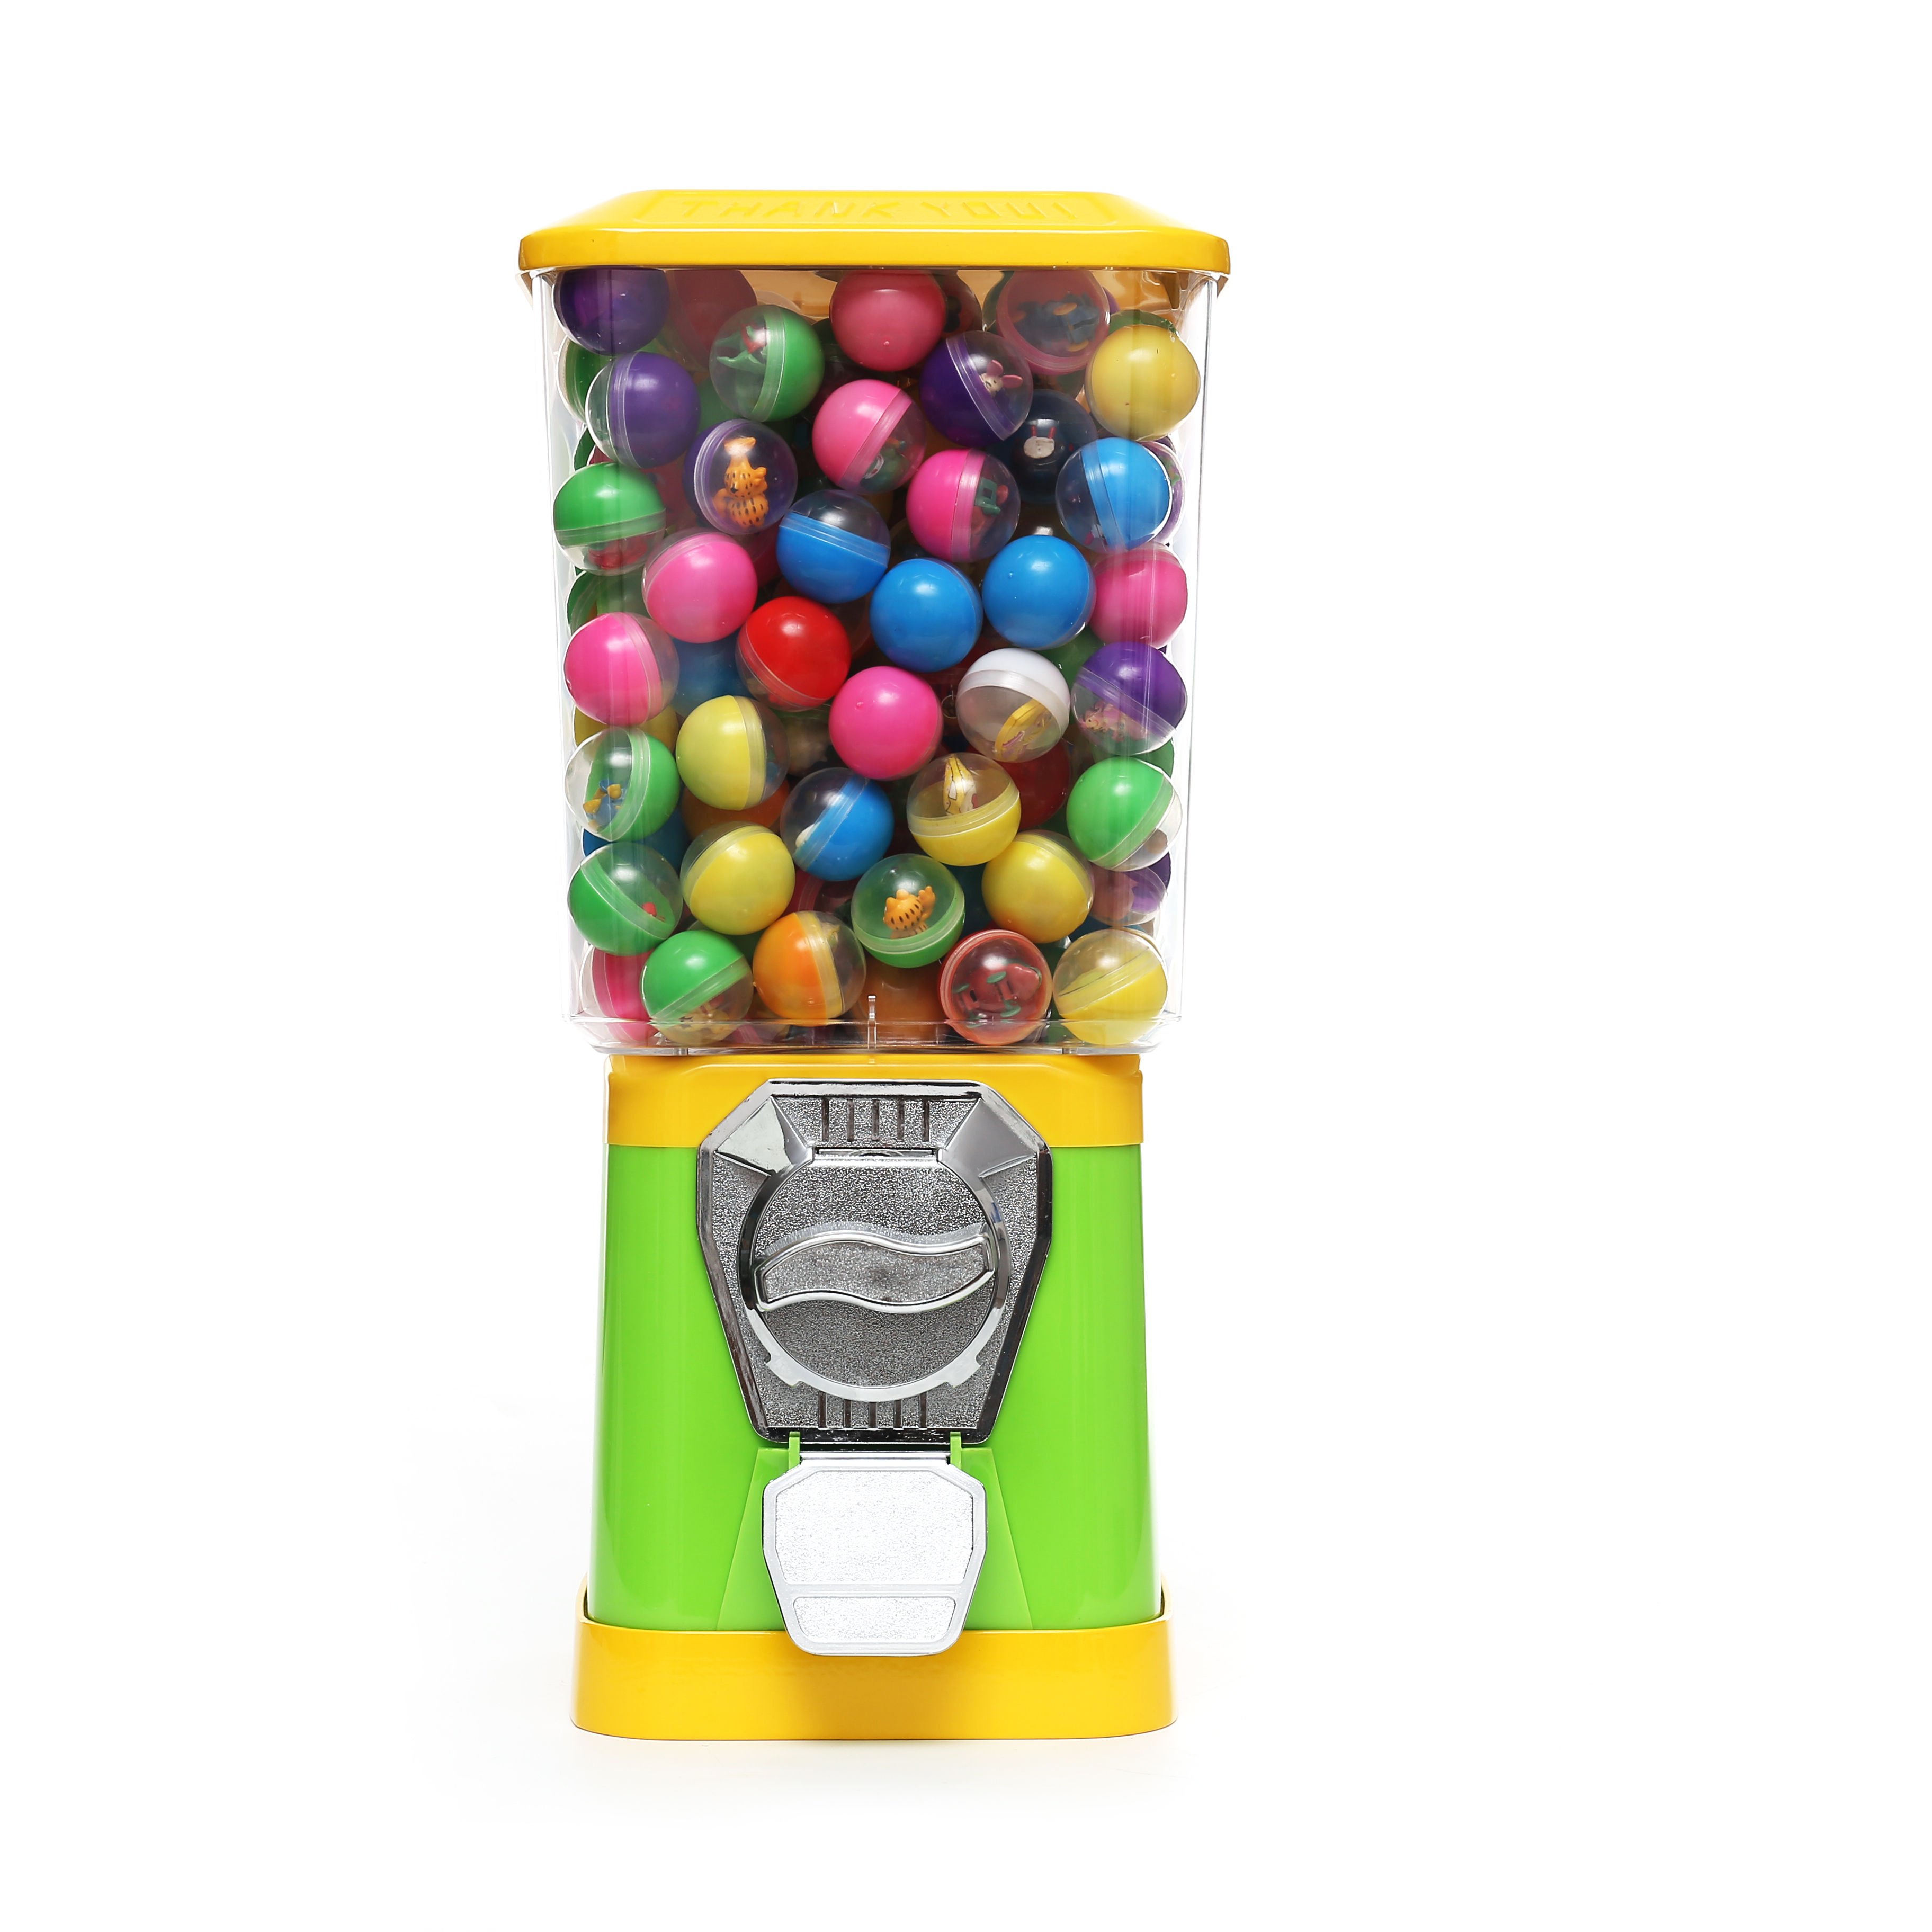 gumball machine candy dispenser capsule toys bouncy ball vending machine with stand for kids